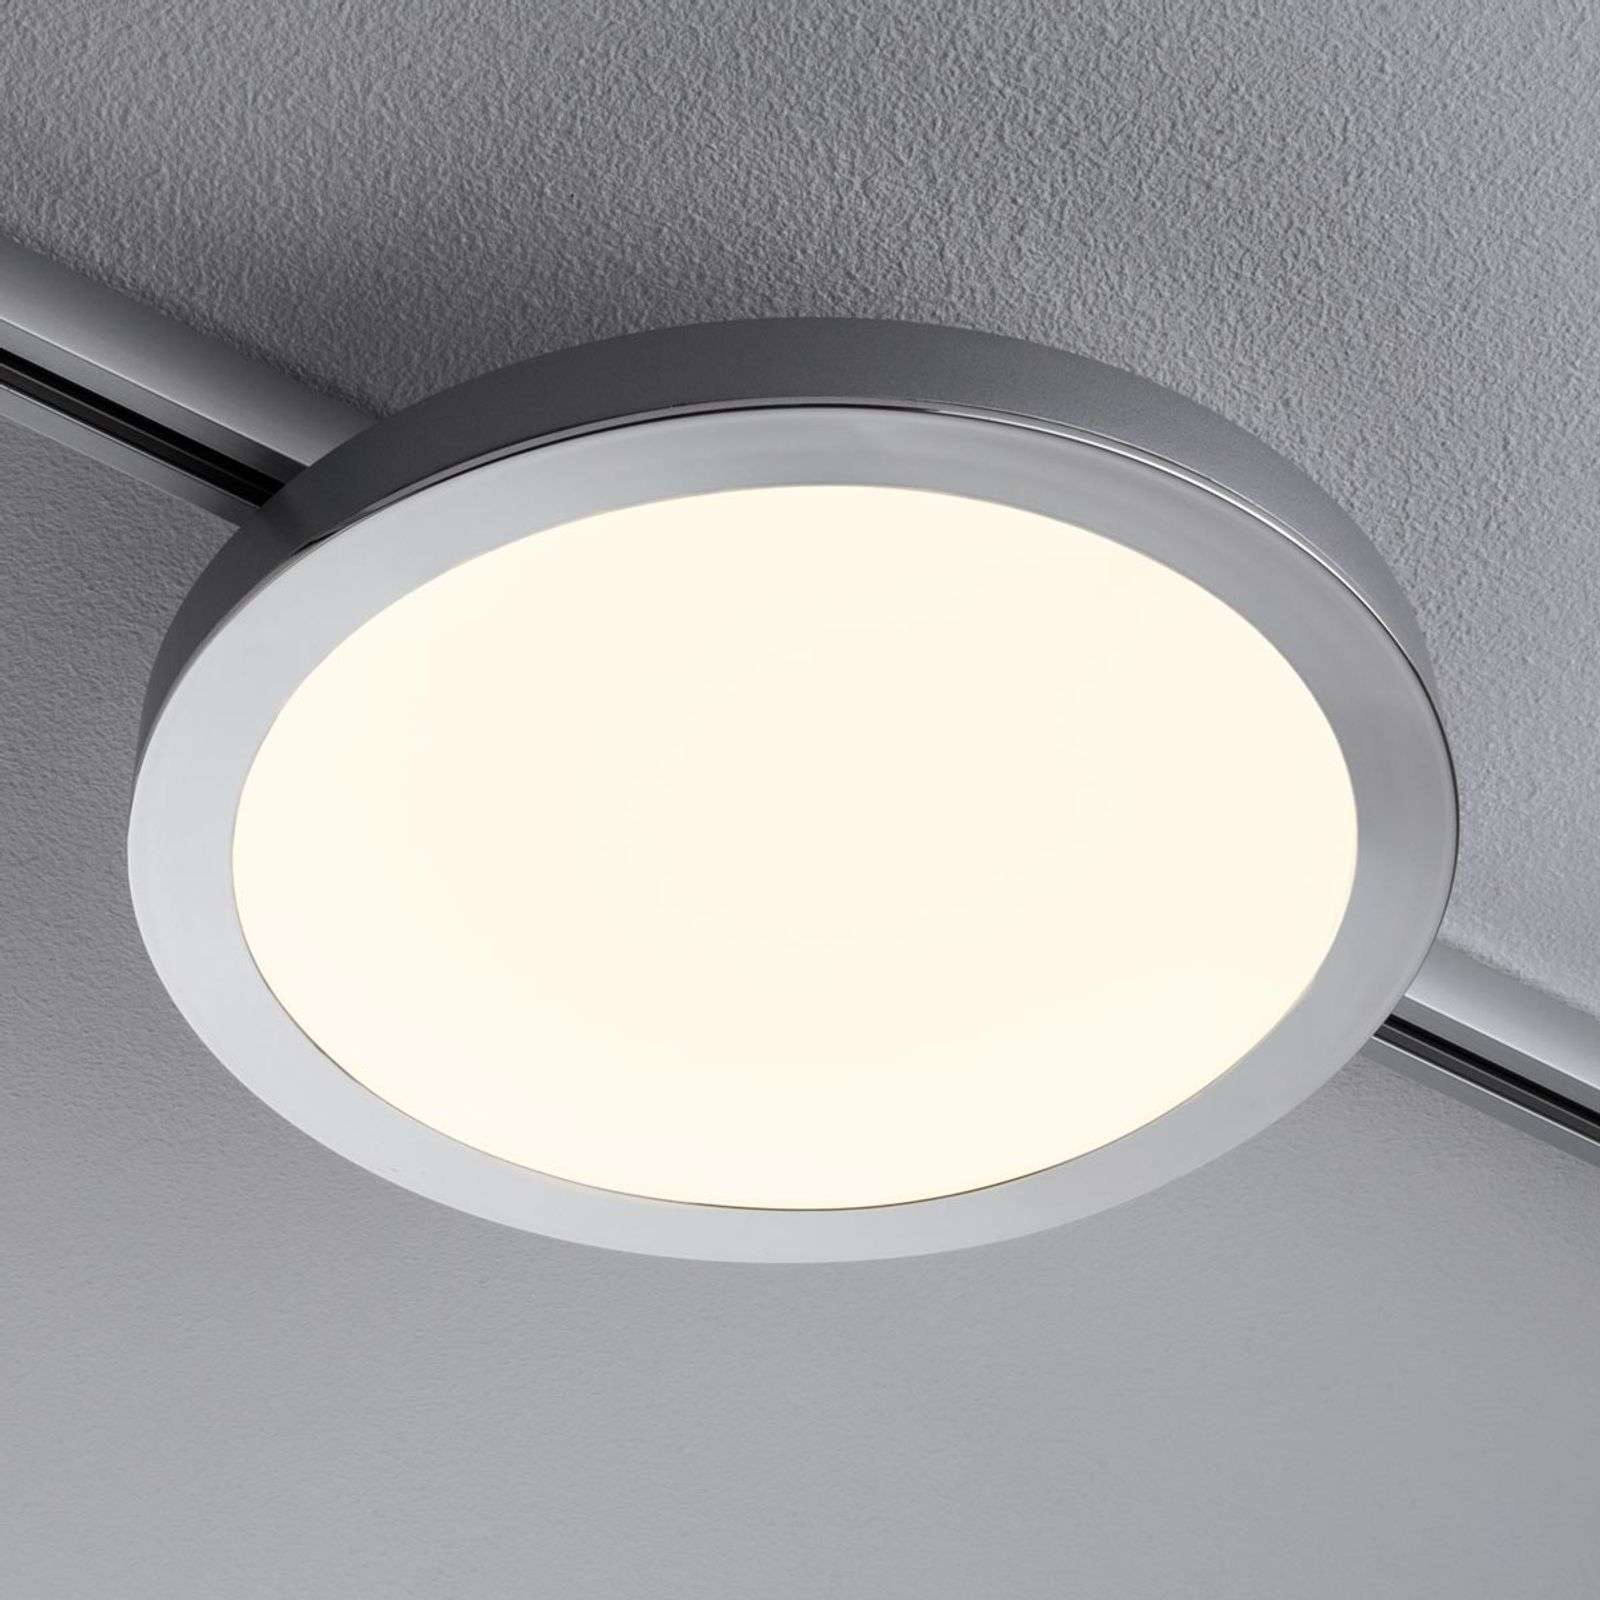 LED Panel Spin per 1-URail cromo satinato